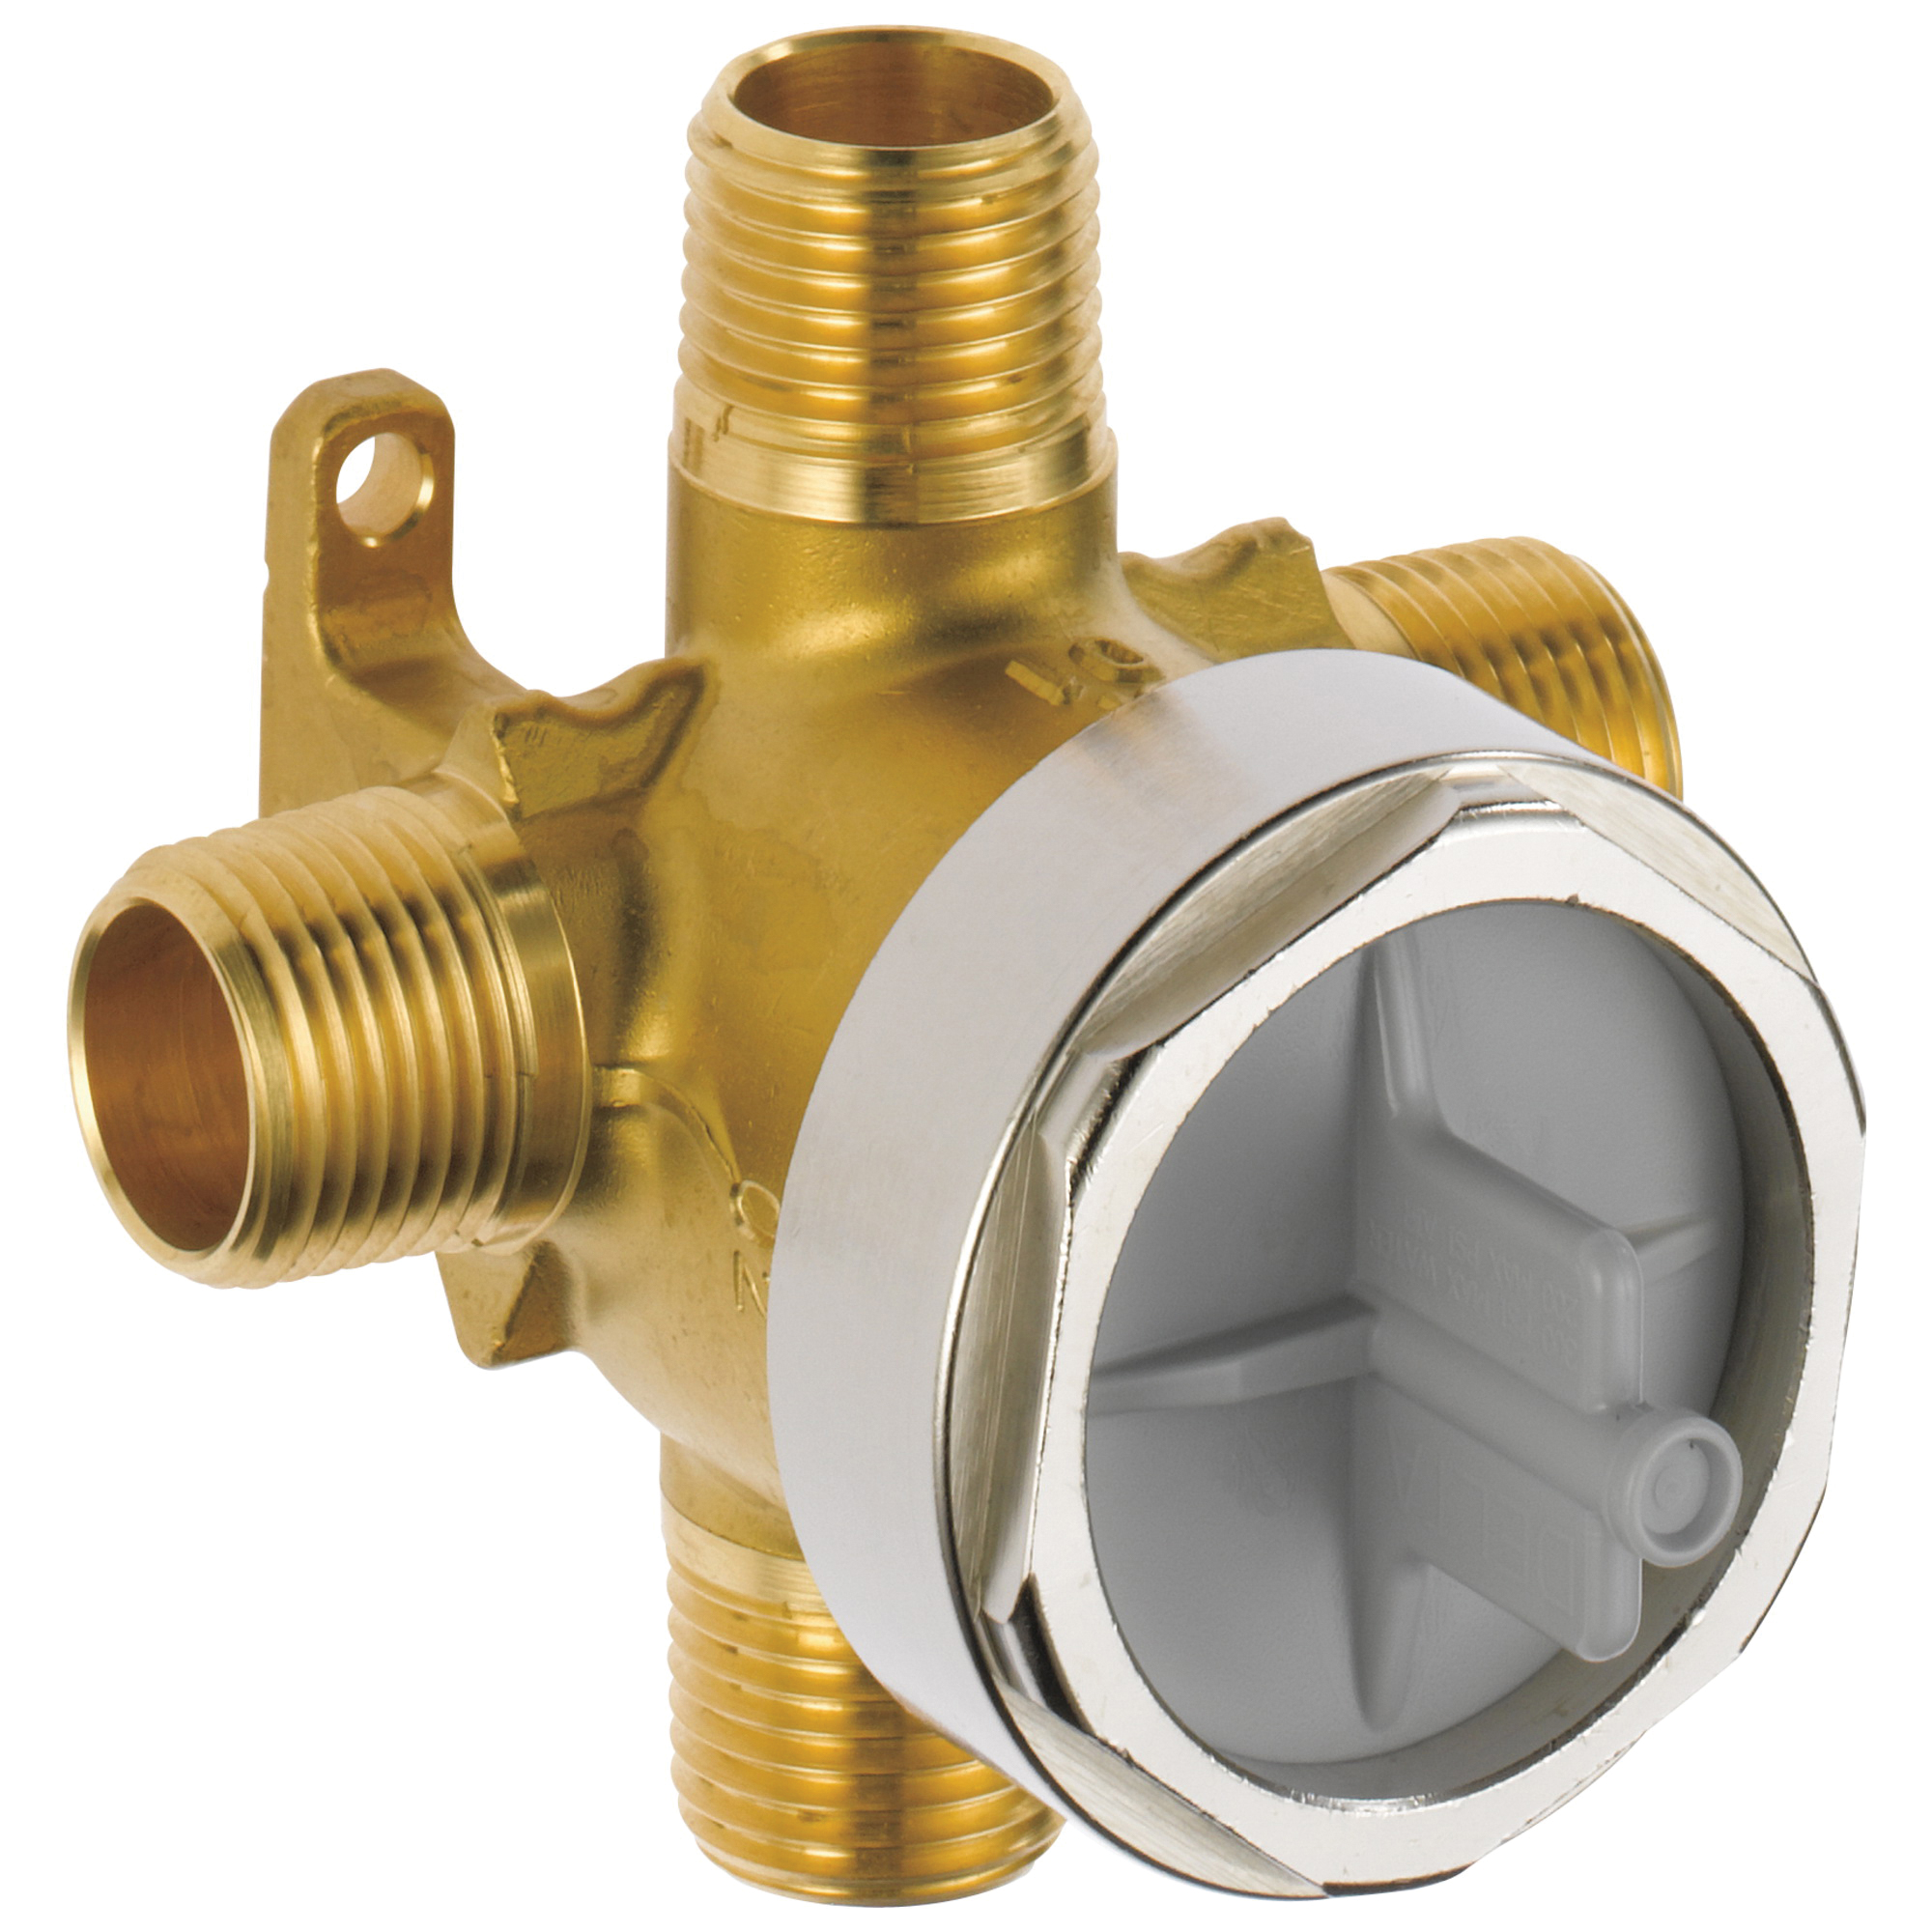 DELTA® R11000 3-Port Rough-In Valve Body, 200 psi, Forged Brass Body, Domestic